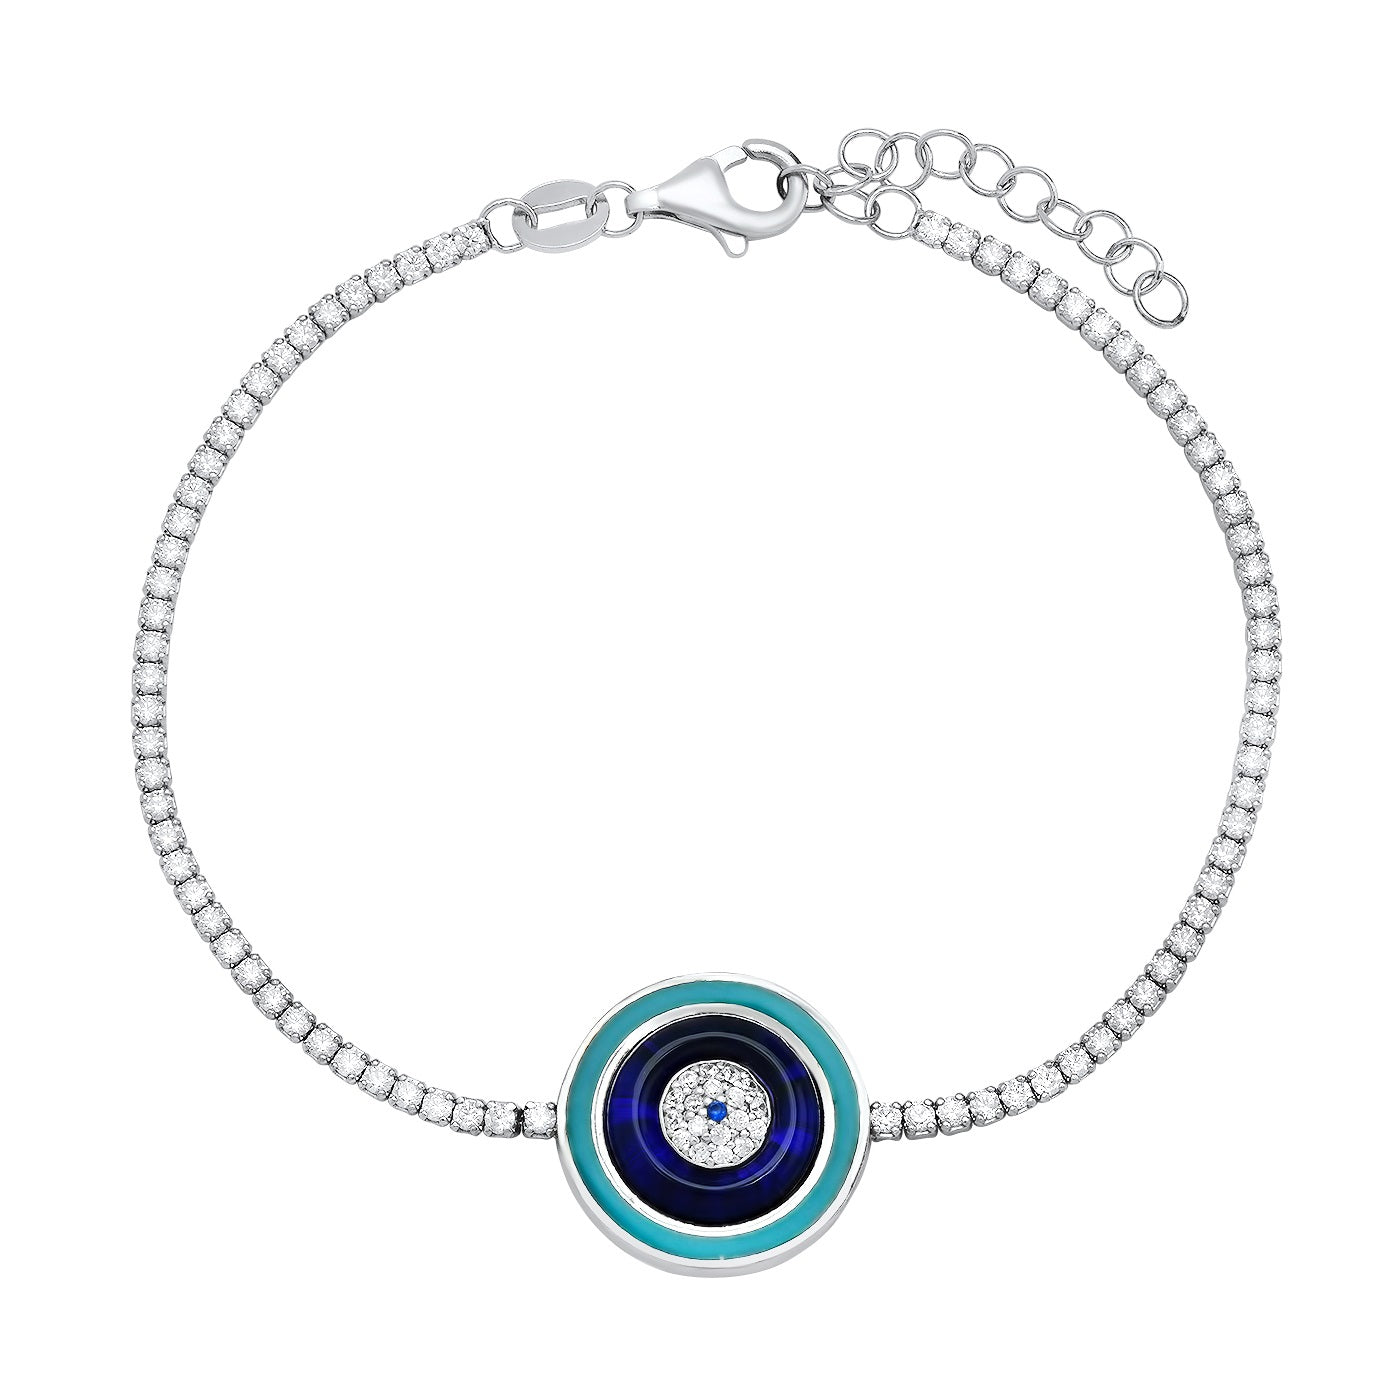 Silver CZ Tennis Bracelet With Enamel Round Eye Center